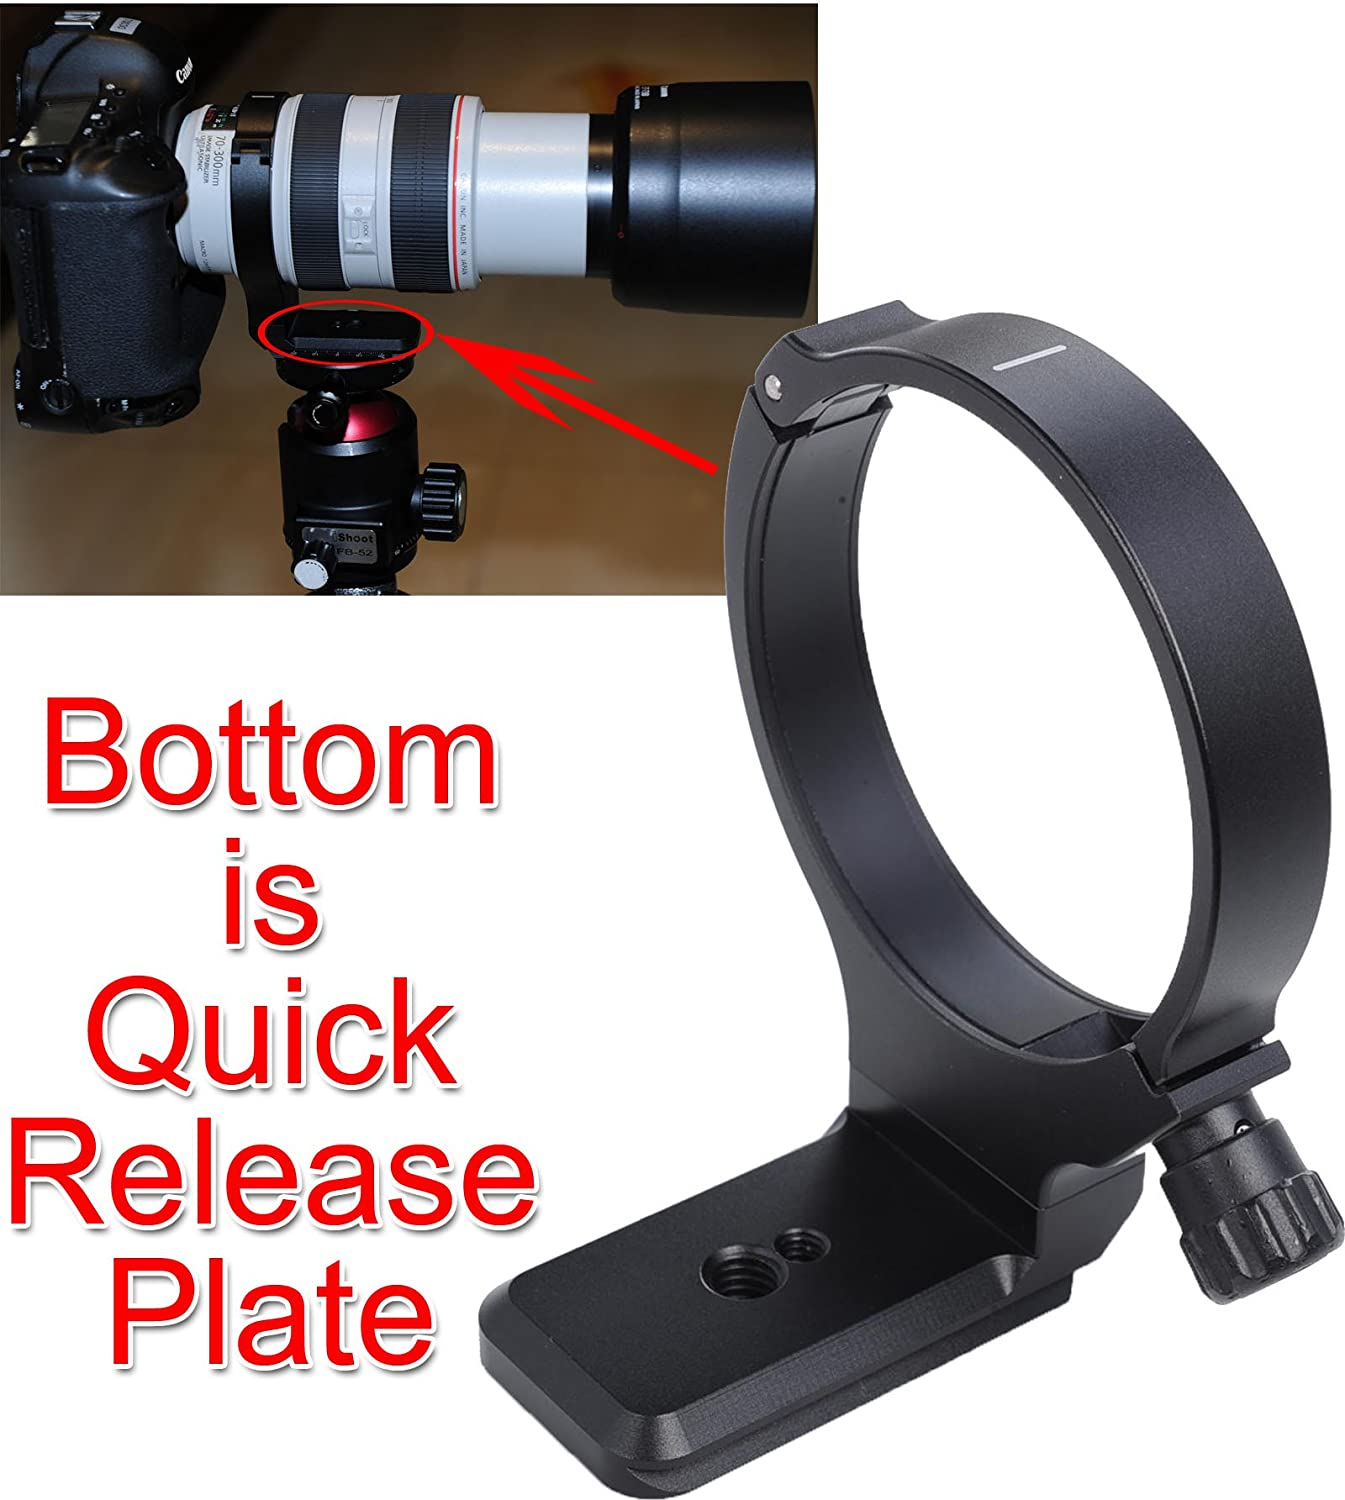 Bottom is Camera Quick Release Plate Canon EF 70-300mm f//4-5.6L IS USM iShoot Latest Metal Lens Support Collar Tripod Mount Ring for Canon EF 28-300mm f//3.5-5.6L IS USM